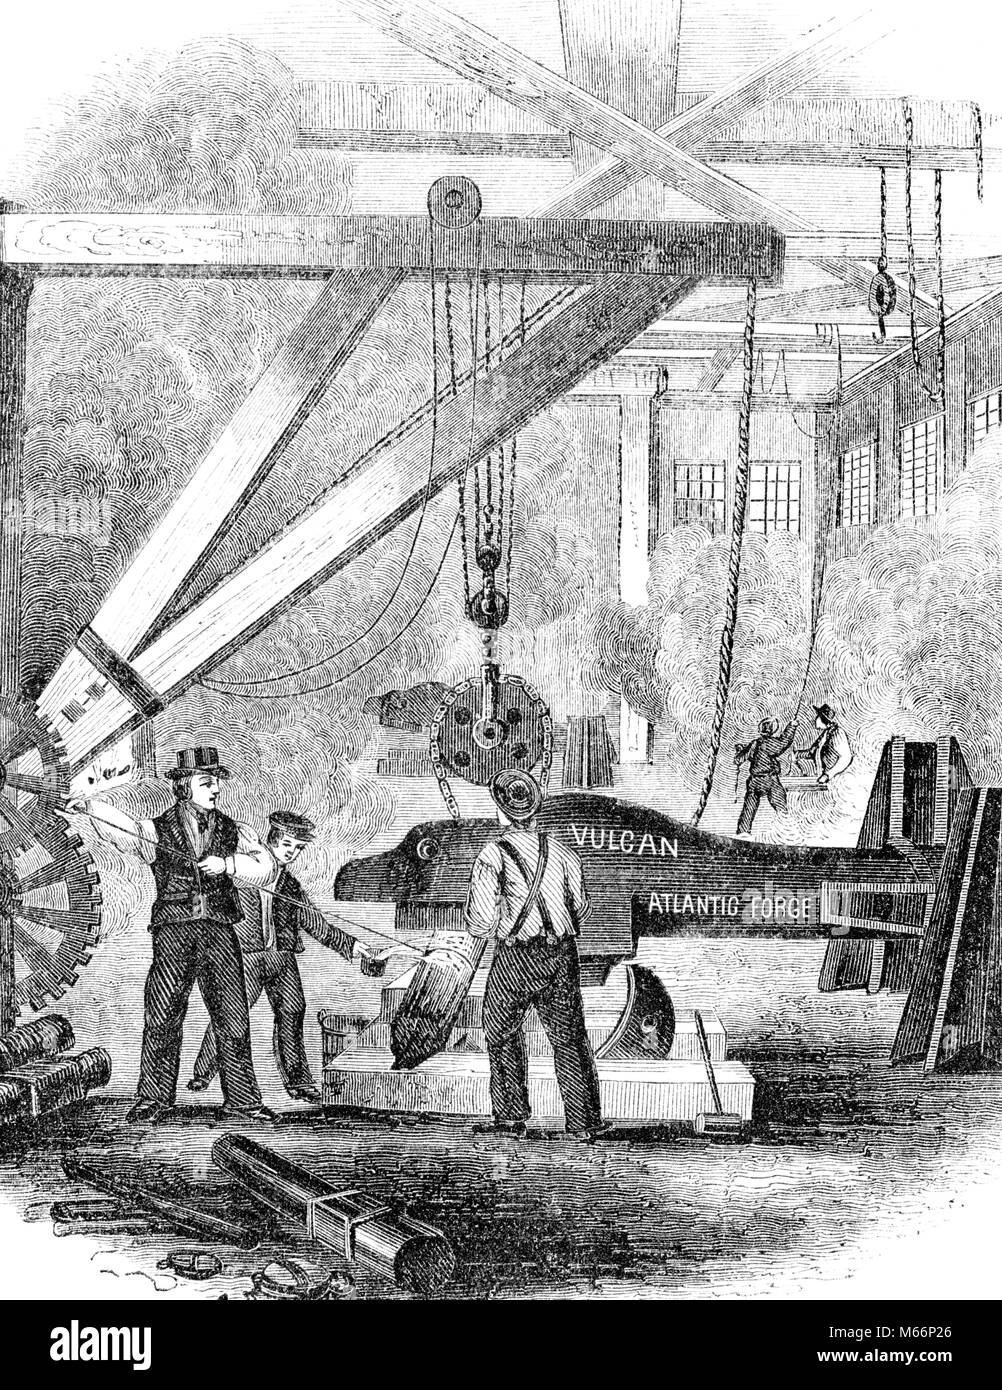 1880s ENGRAVING OF 19th CENTURY IRON WORKS - o3500 LAN001 HARS HISTORY JOBS CAST MANAGER FULL-LENGTH MASS HEAVY - Stock Image